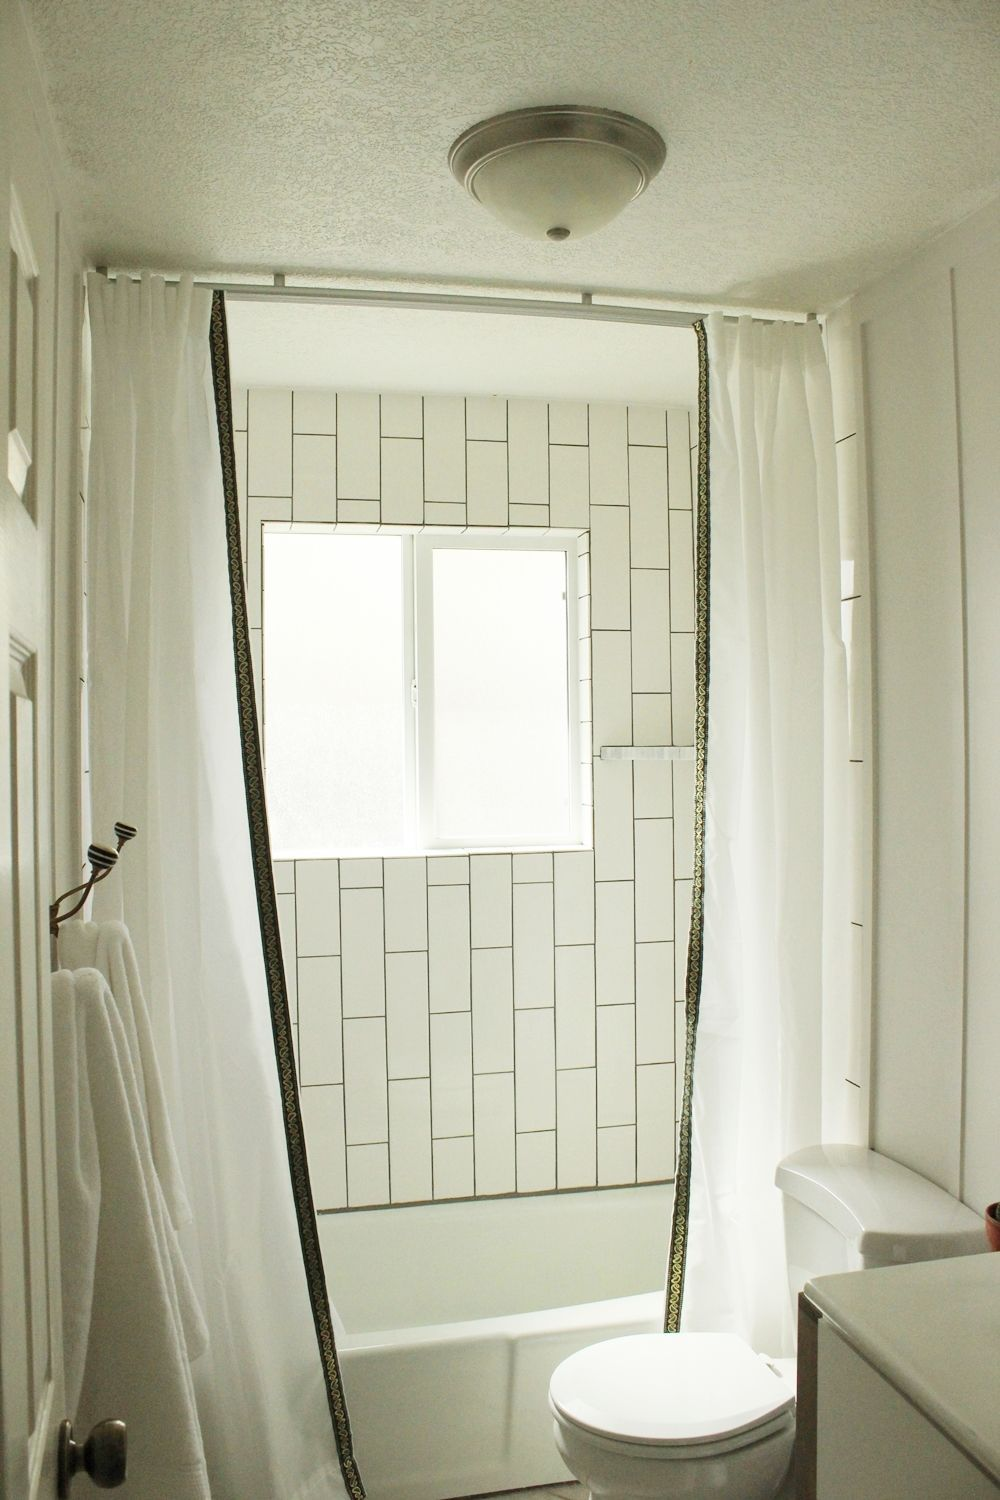 How to Install a Ceiling-Mounted Shower Curtain | DIY Projects ...